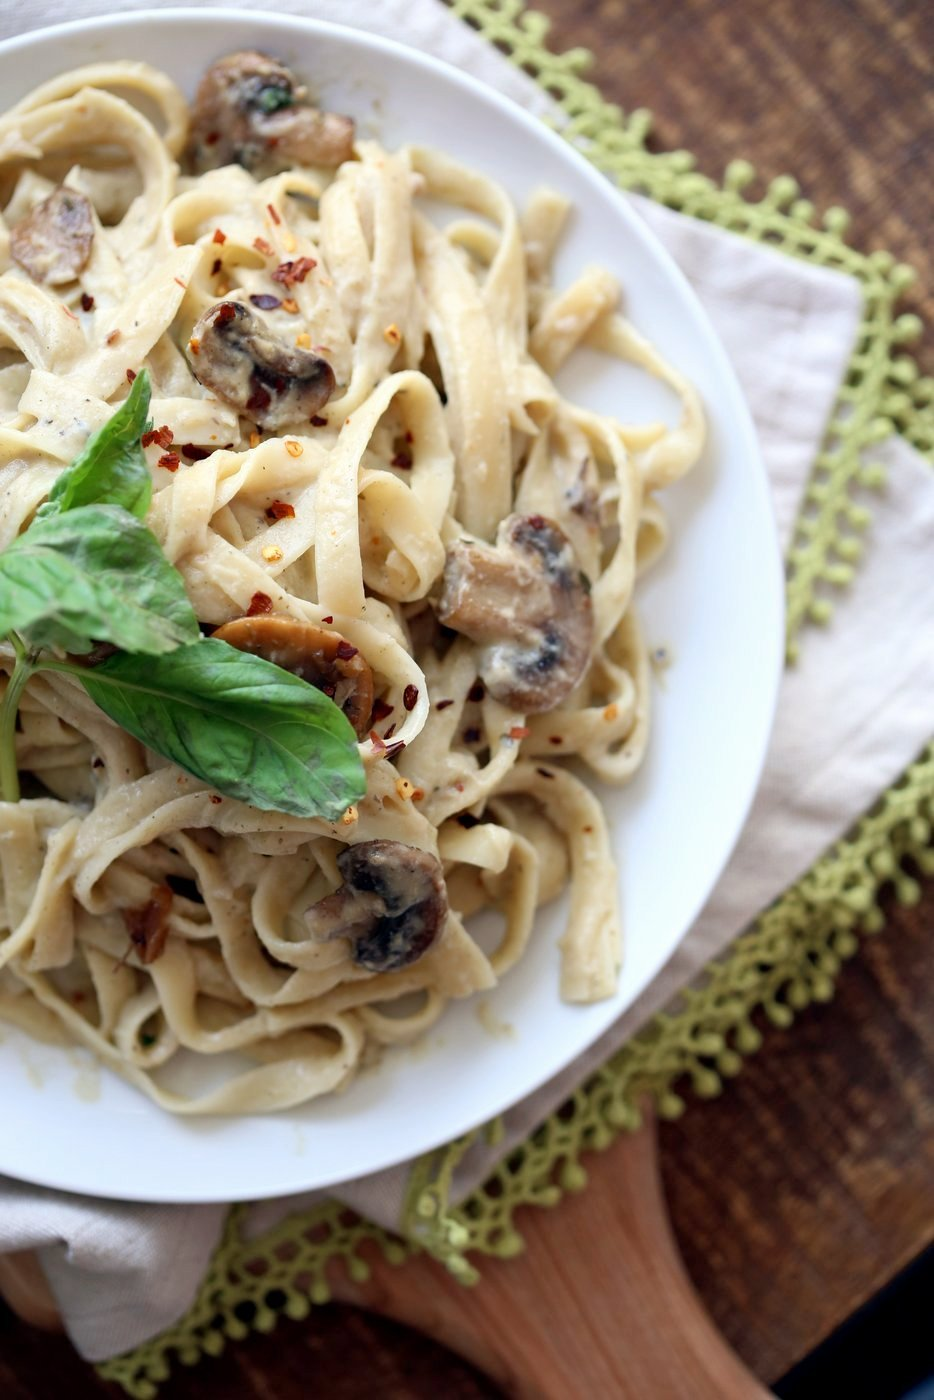 The Best Vegan Mushroom Garlic Alfredo with no nuts. Garlicky, Creamy, Amazing Vegan Fettuccine Alfredo. Nut-free, Easily Gluten-free, soy-free. | VeganRicha.com